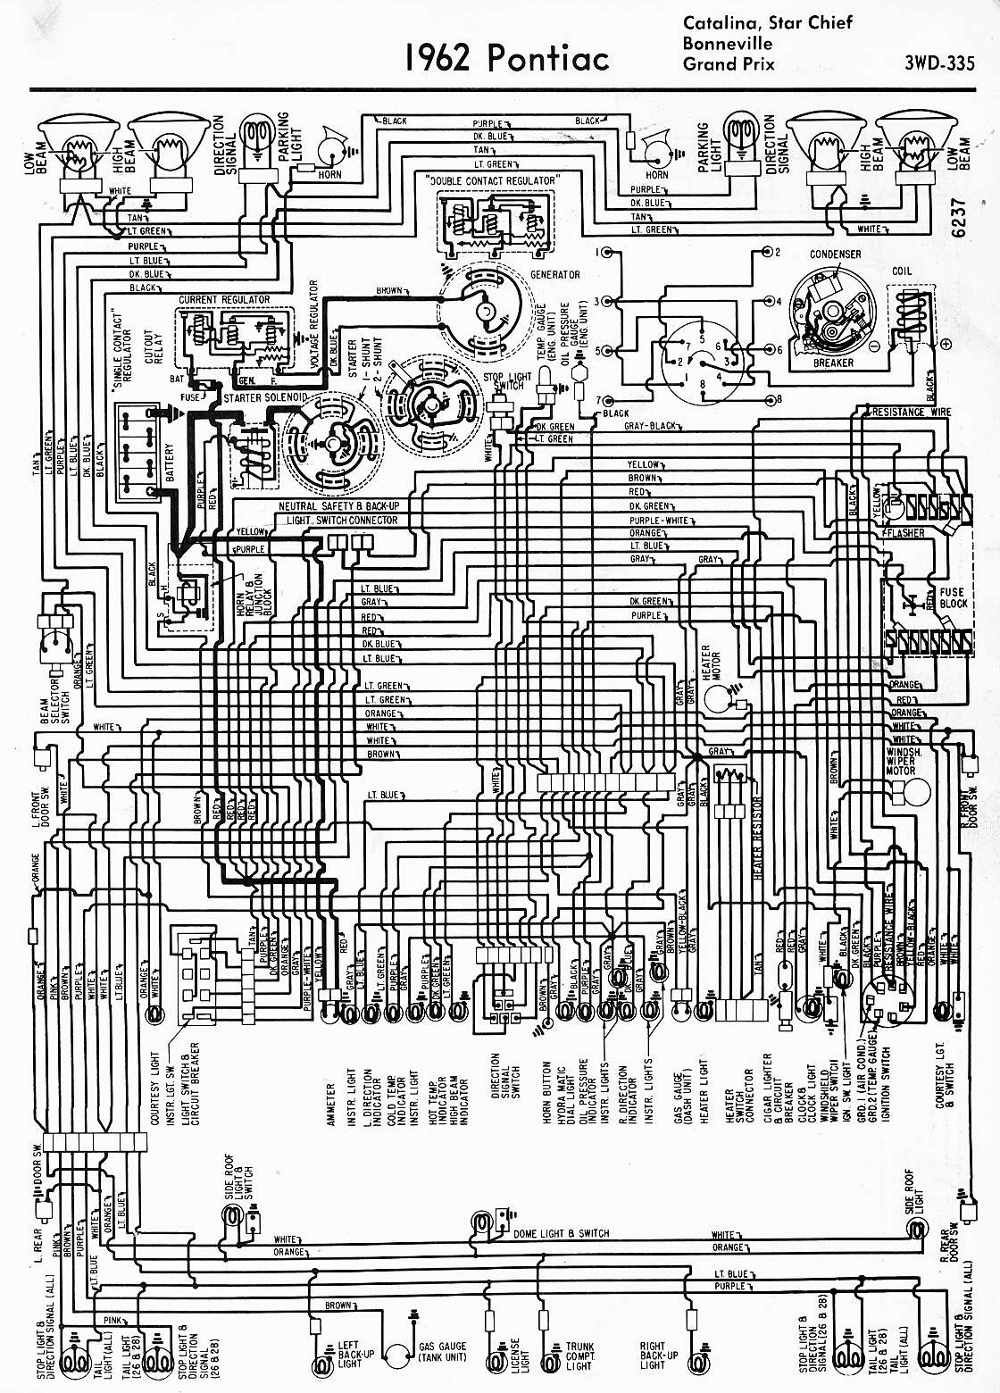 Wiring Diagrams Of 1962 Pontiac Catalina Star Chief Bonneville And Grand Prix Pontiac Catalina Diagram Pontiac